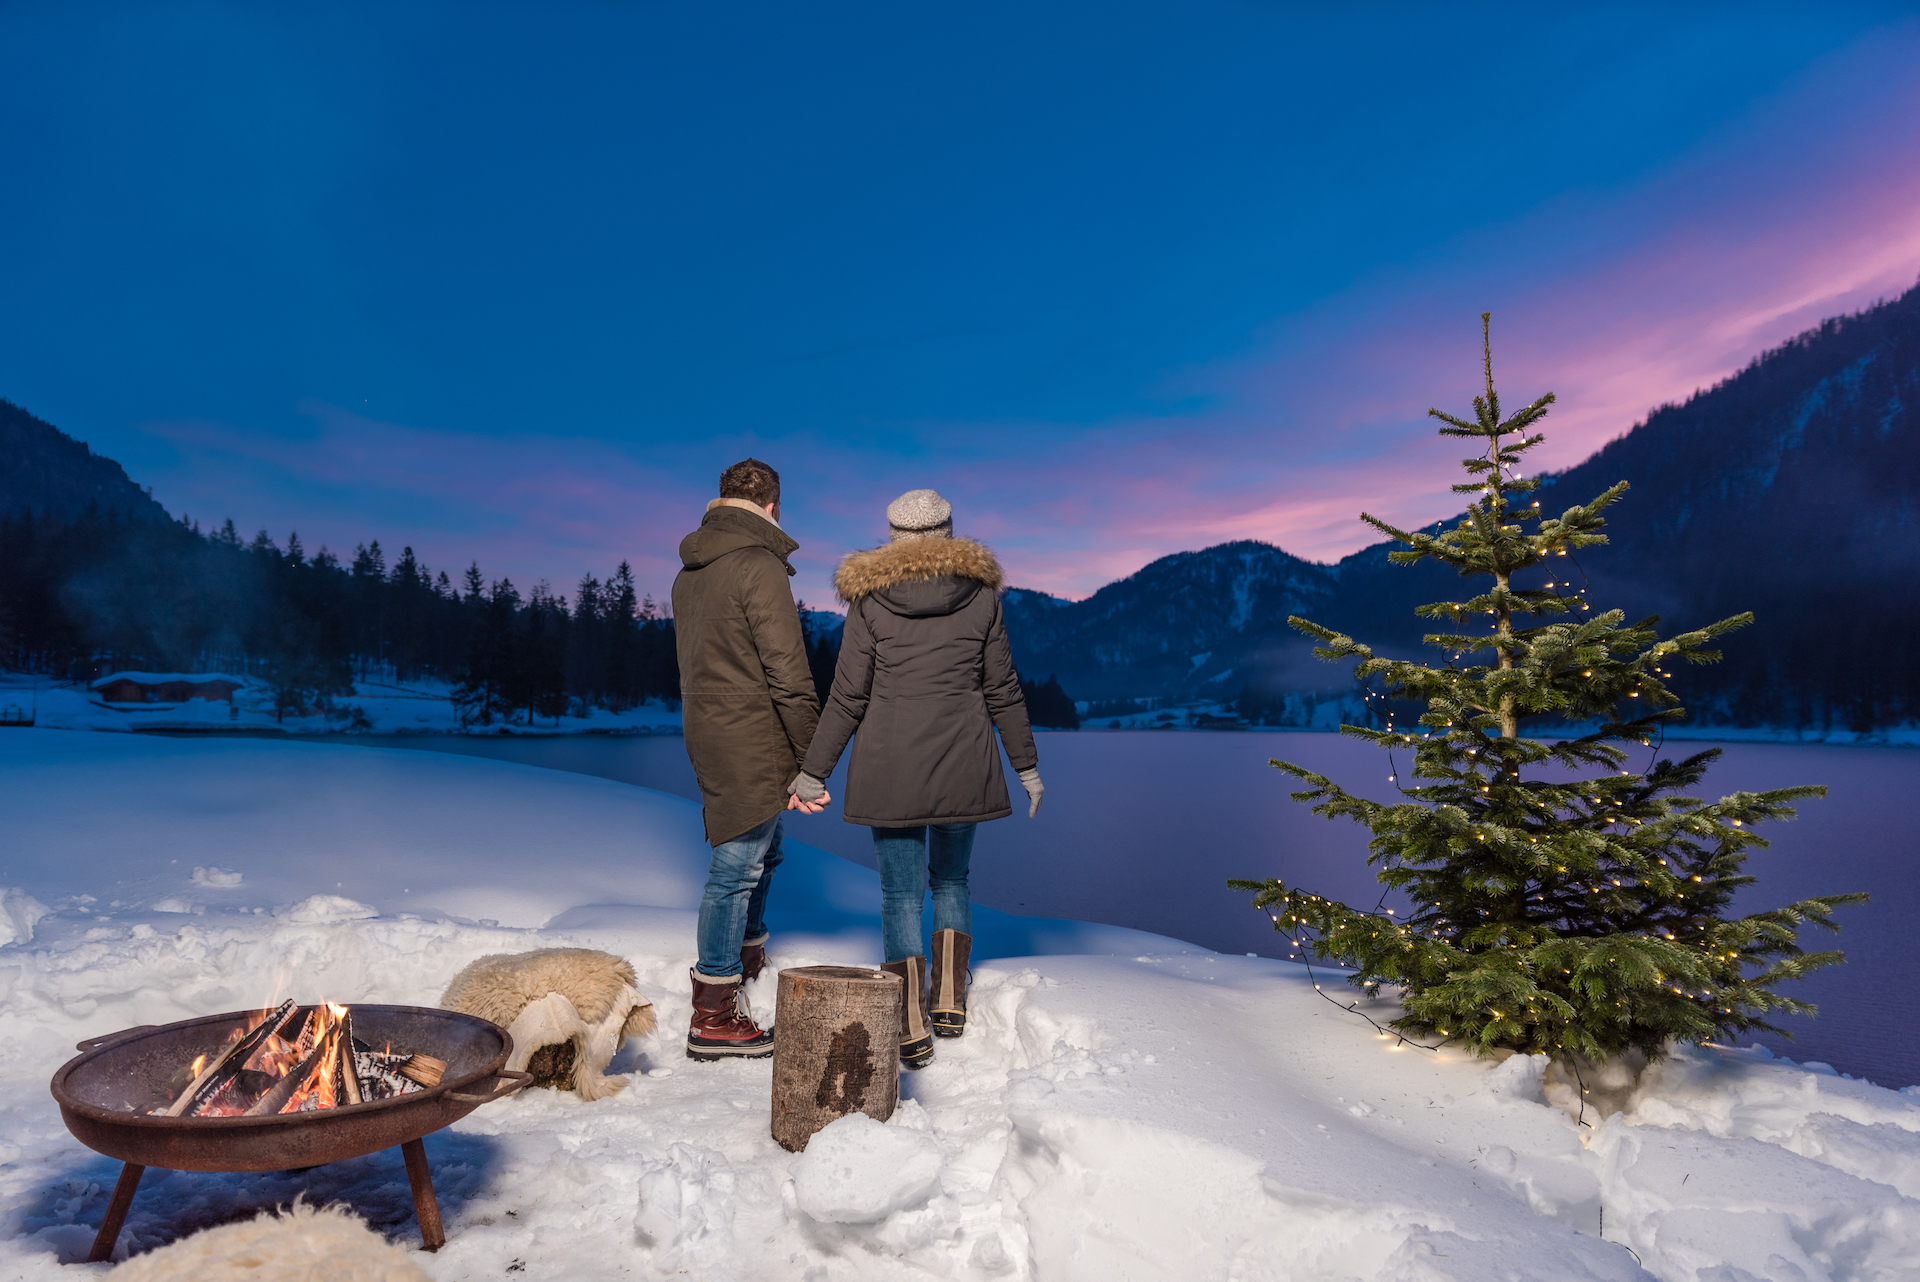 Bild OFP - Advent am Pillersee